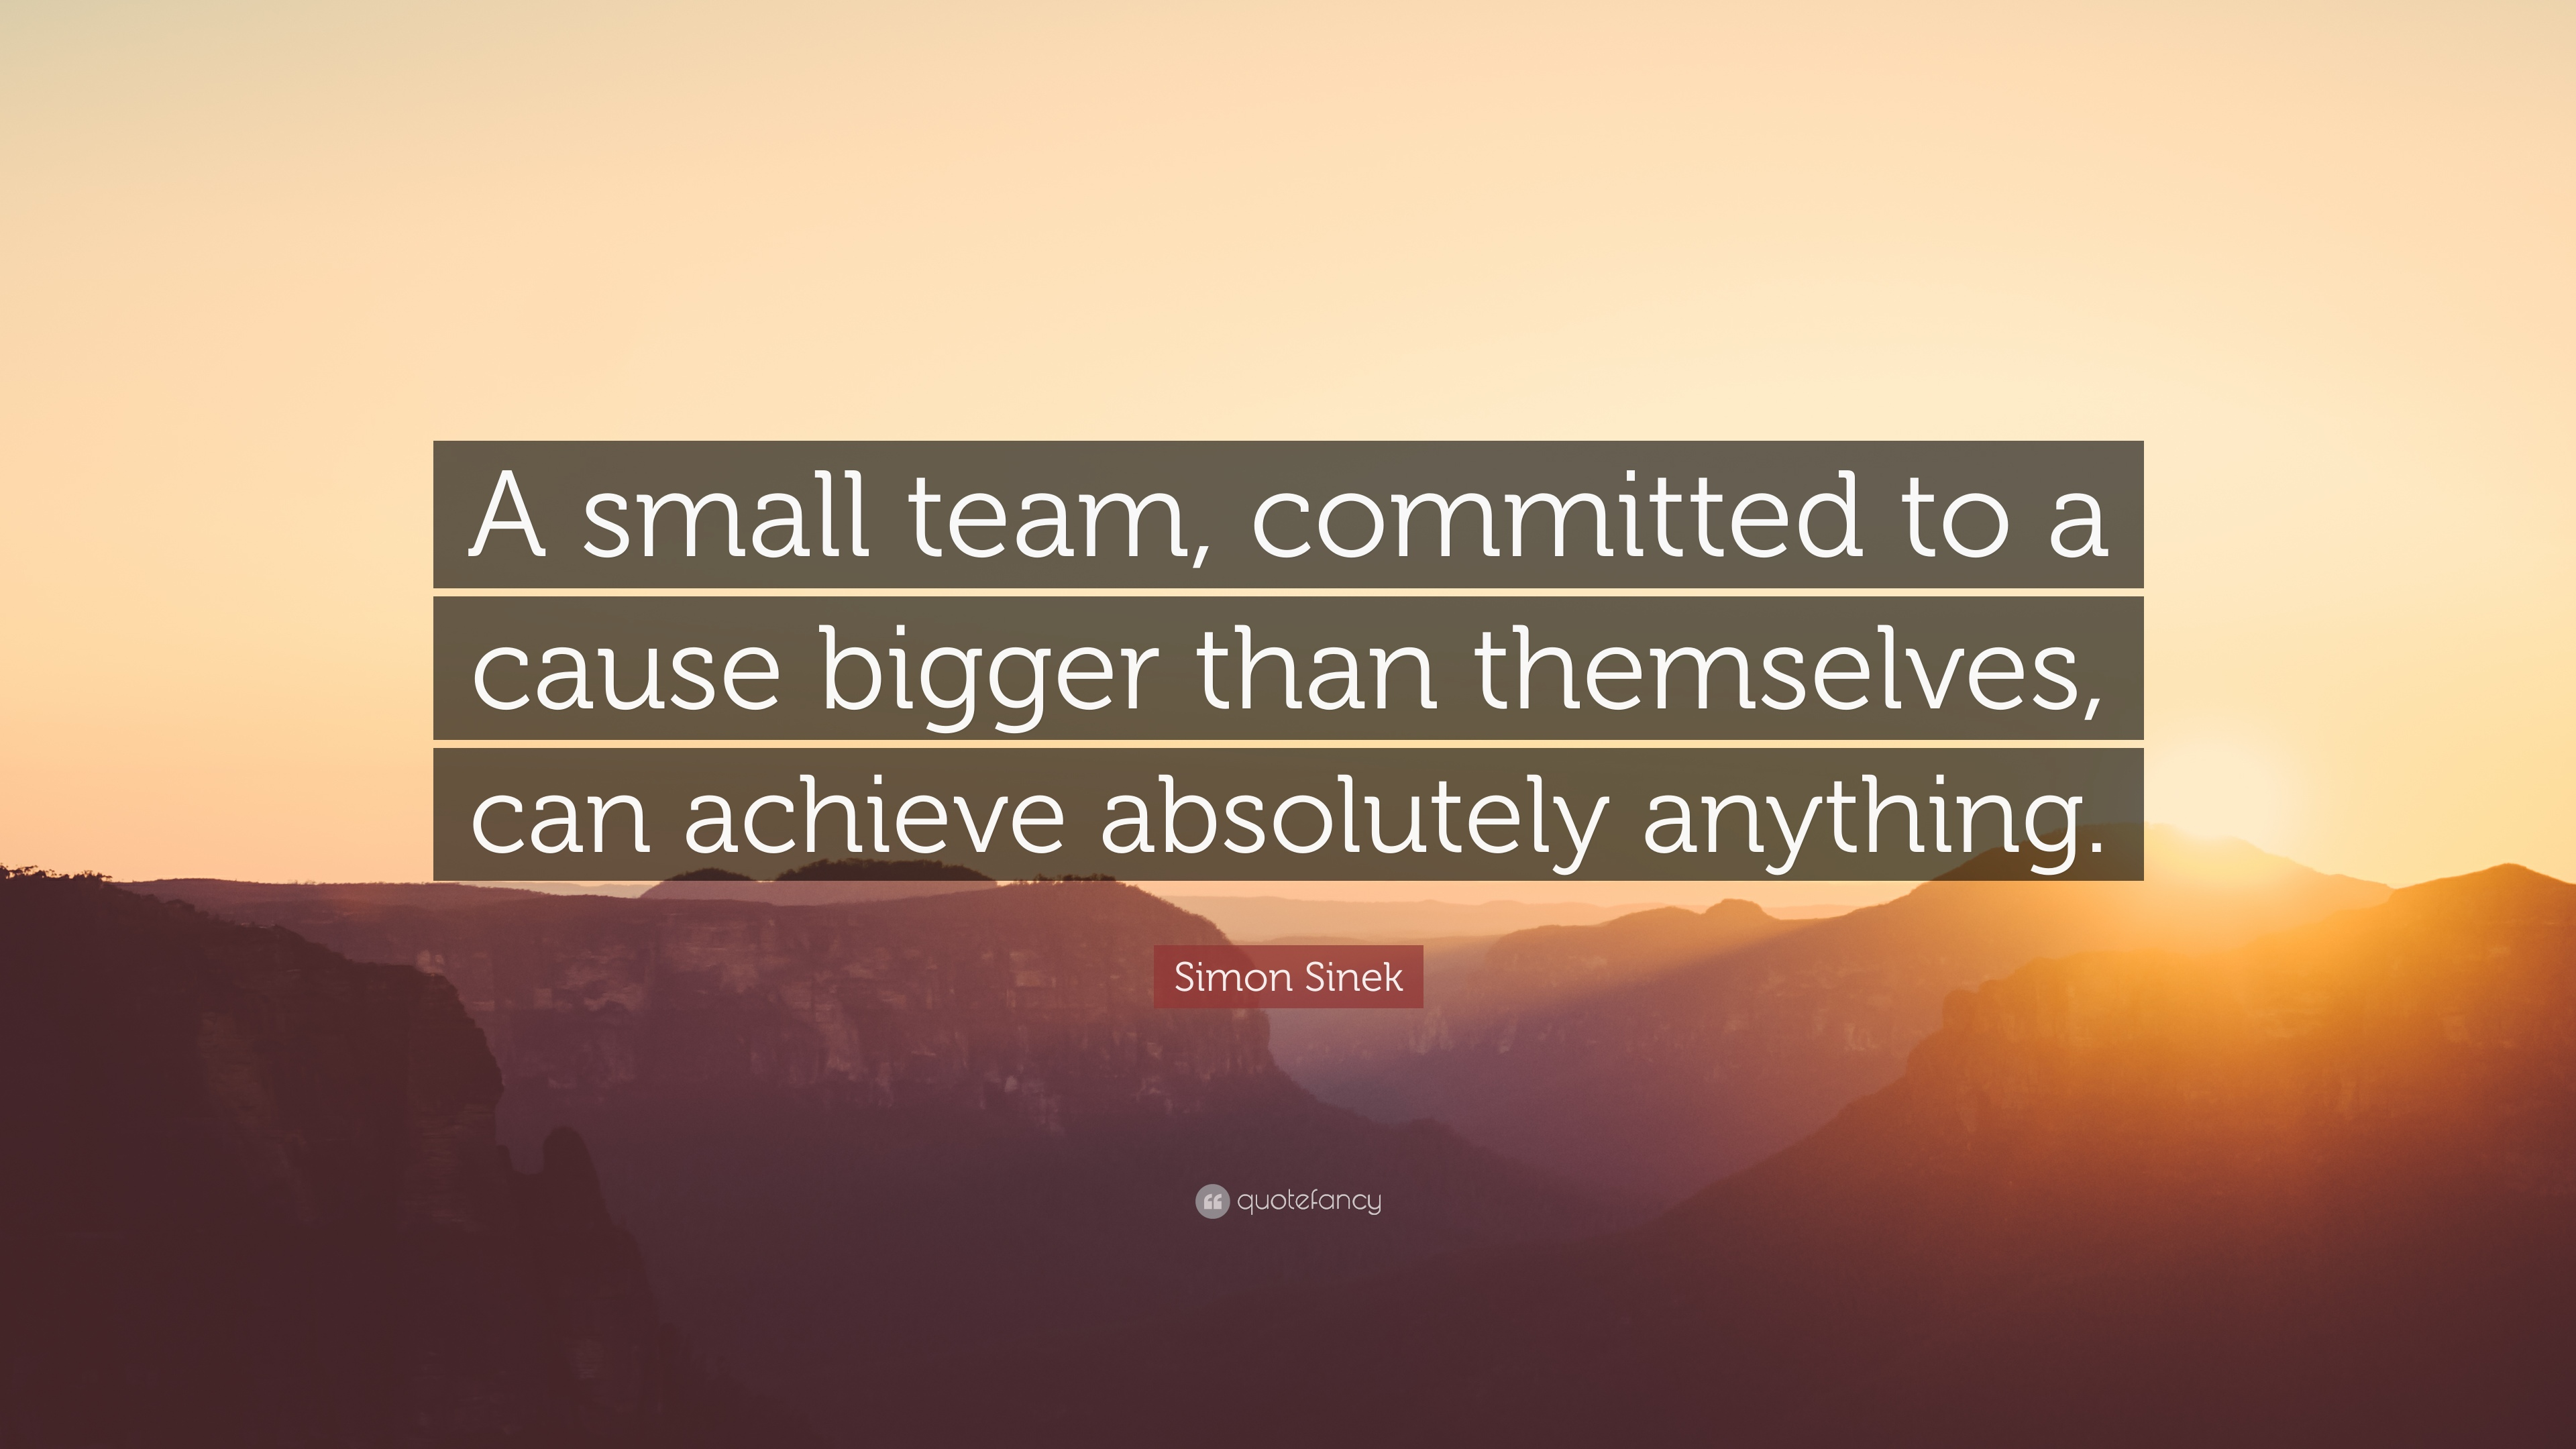 Achieve Quotes Wallpaper Simon Sinek Quote A Small Team Committed To A Cause